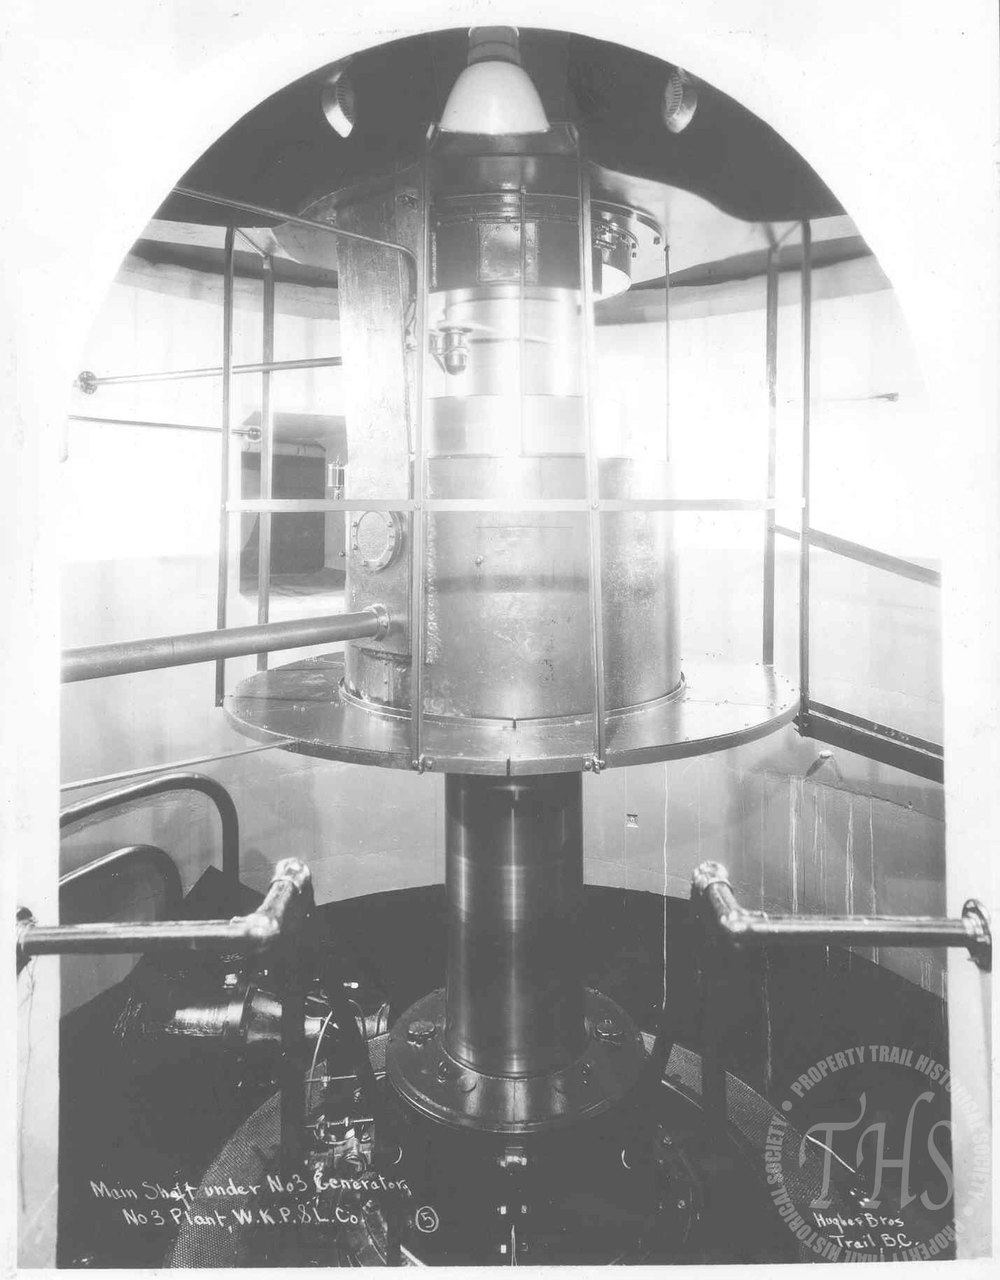 Main shaft under #3 generator, South Slocan plant (Hughes) - 1930